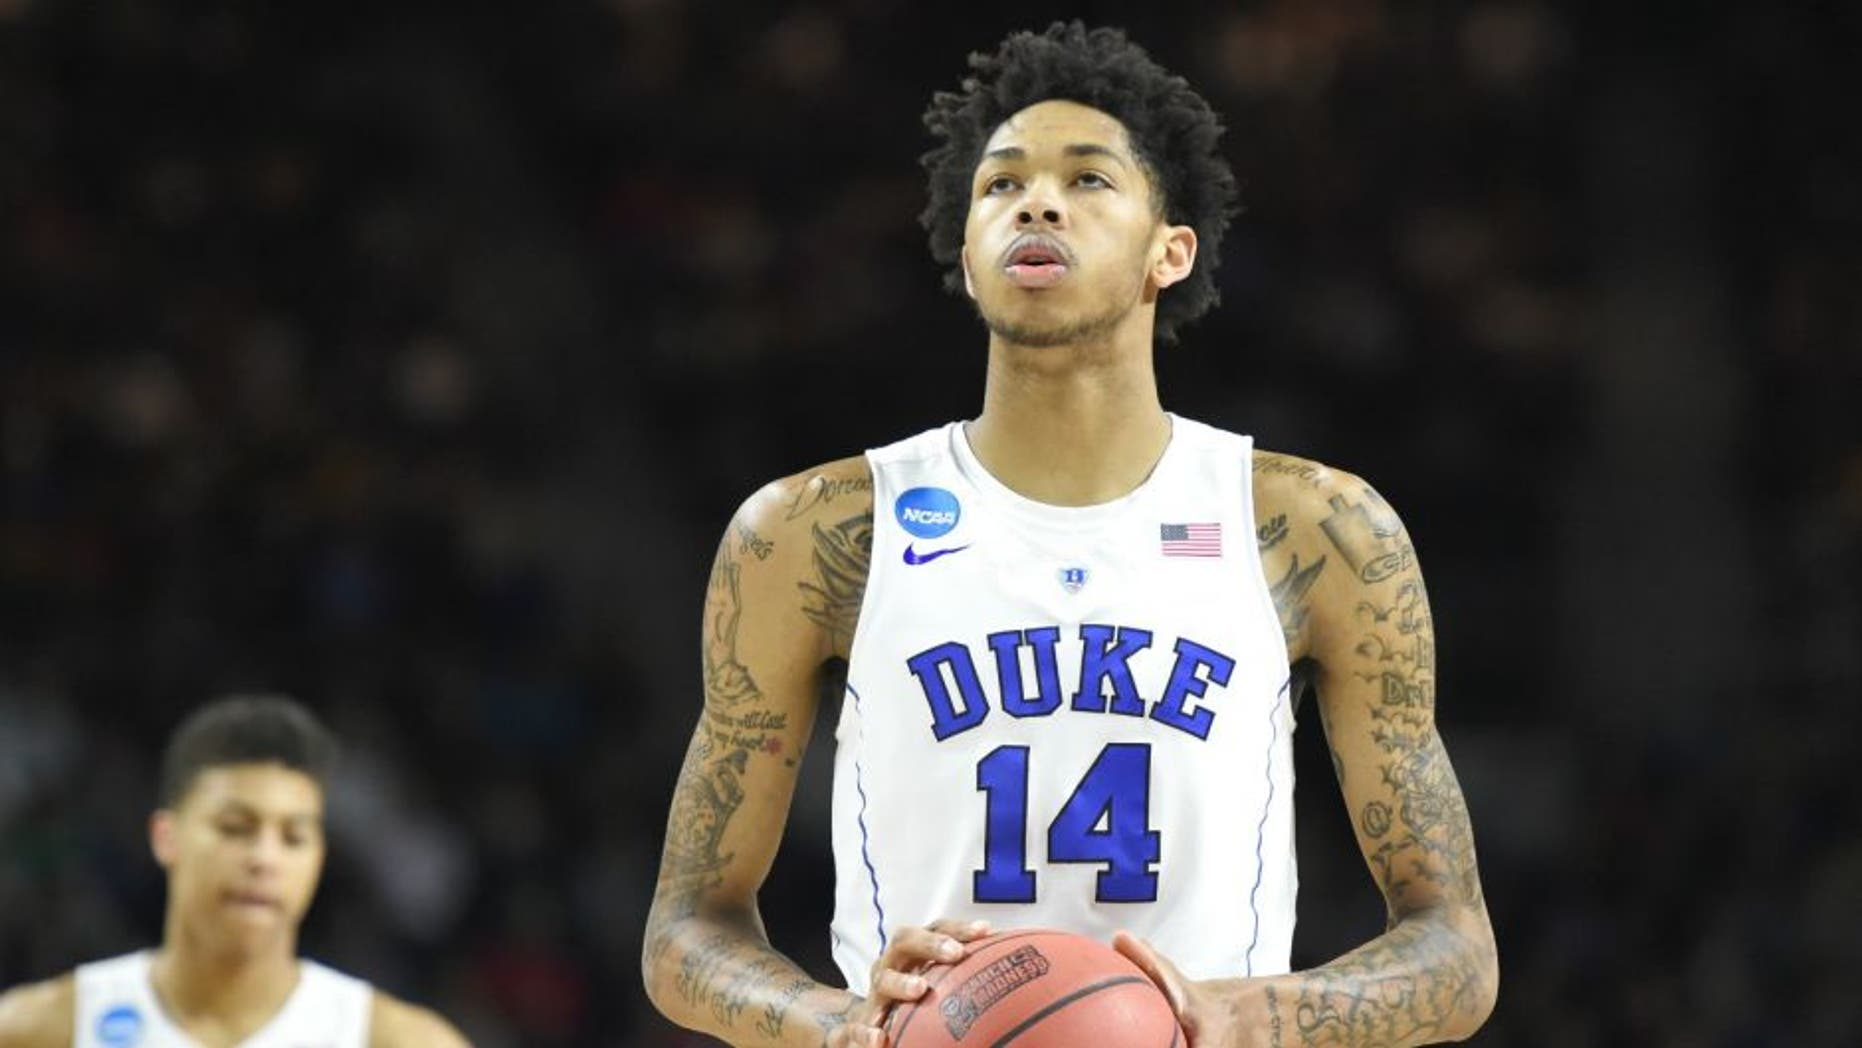 PROVIDENCE, RI - MARCH 19: Brandon Ingram #14 of the Duke Blue Devils takes a foul shot during a first round NCAA College Basketball Tournament game against the Yale Bulldogs at Dunkin' Donuts Center on March 19, 2016 in Providence, Rhode Island. The Blue Devils won 71-64. (Photo by Mitchell Layton/Getty Images)